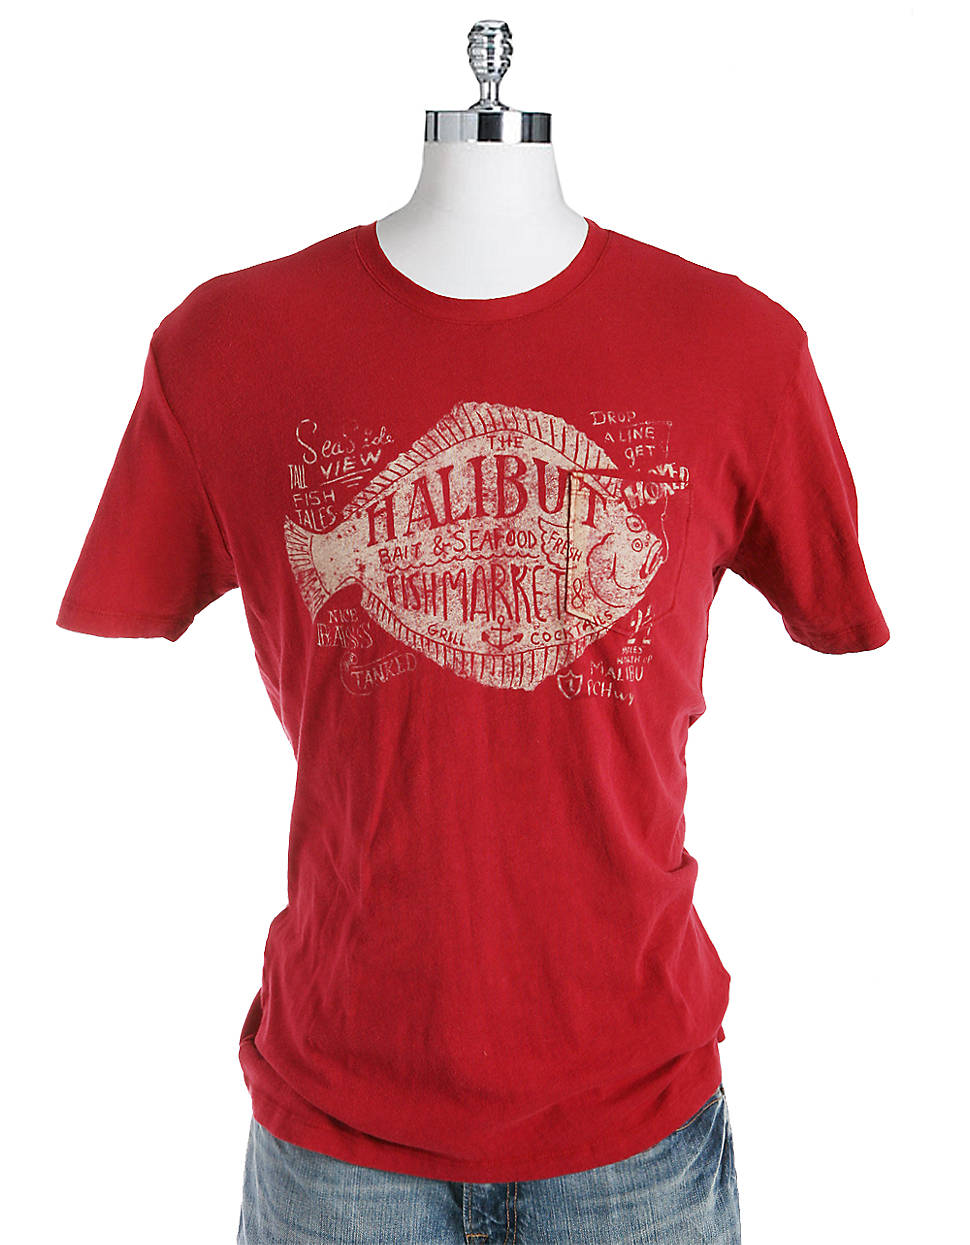 Lucky brand halibut fish market graphic t shirt in red for for Fishing t shirts brands